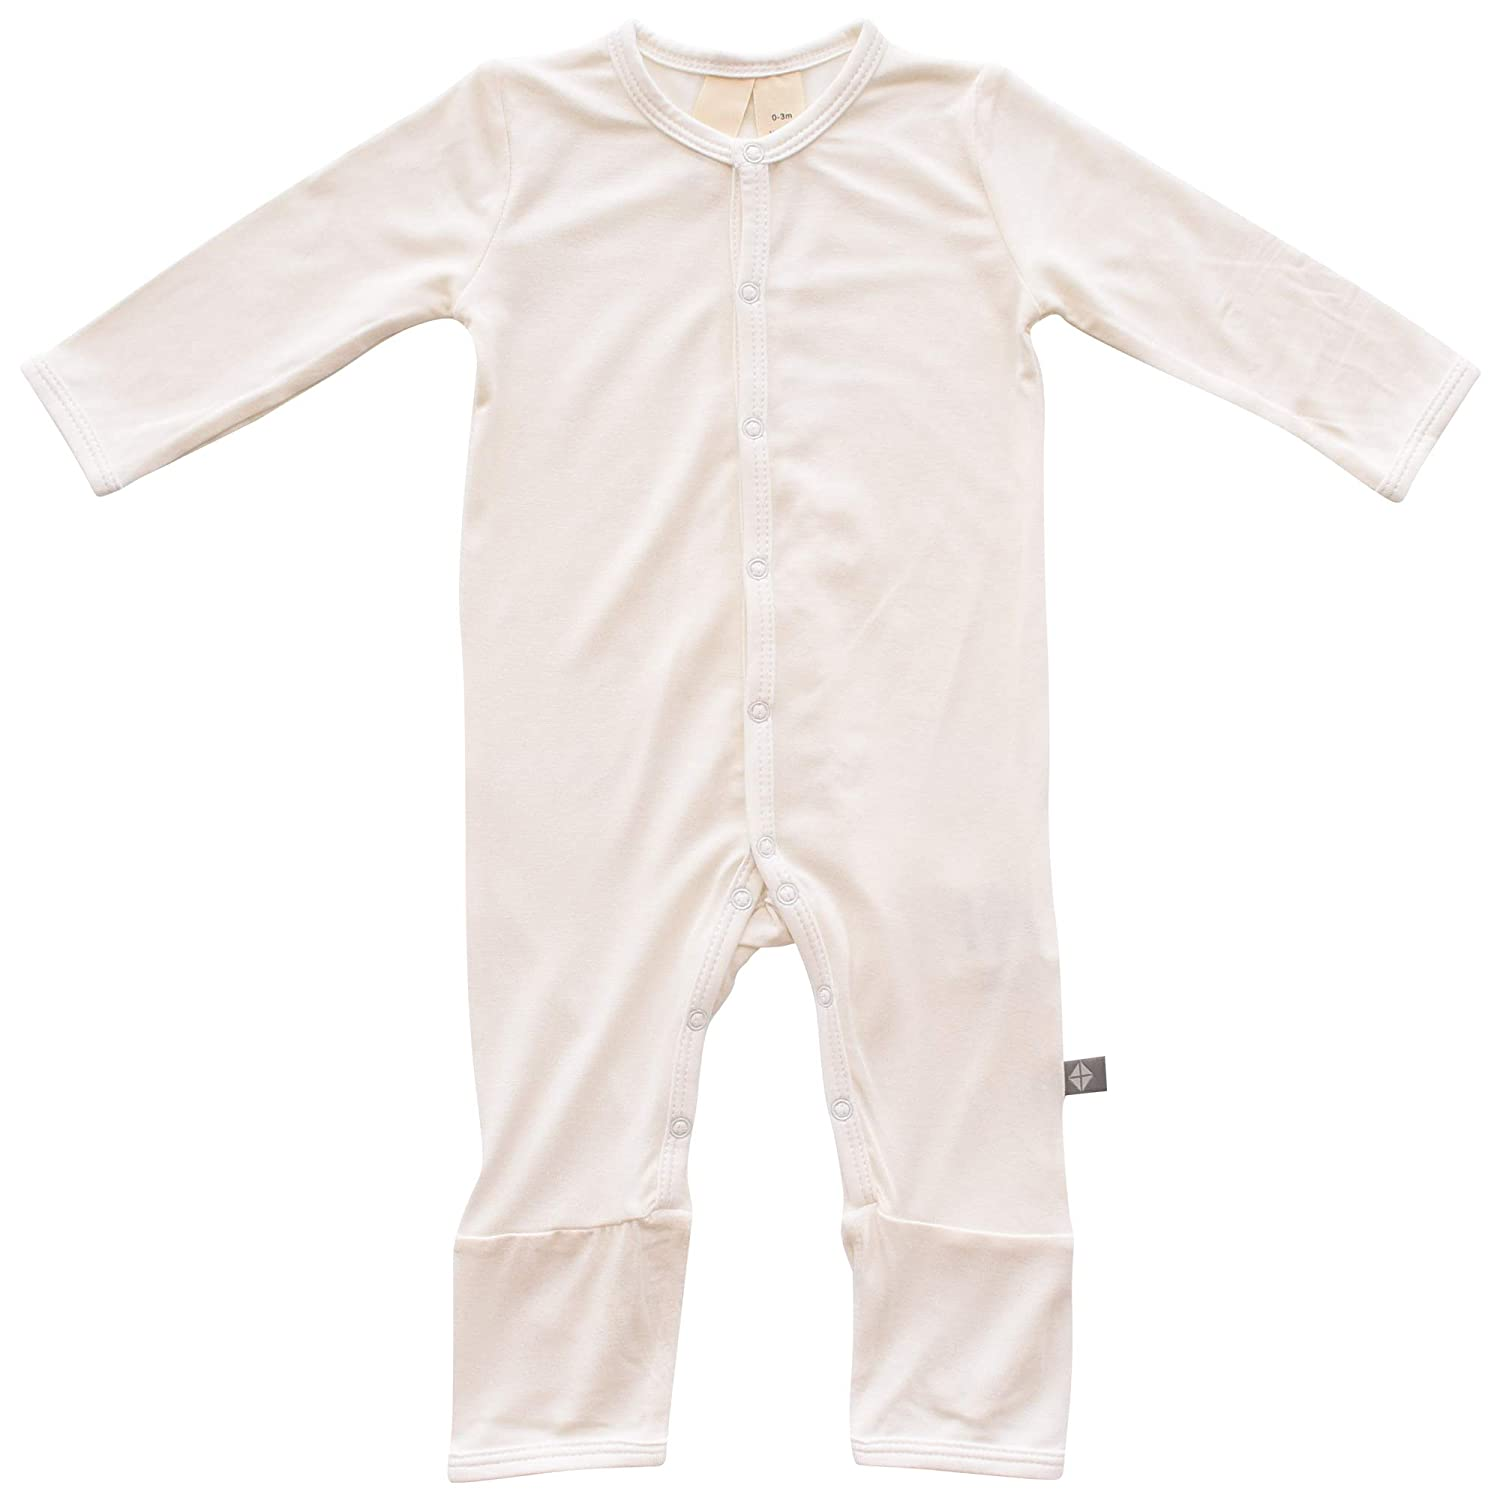 6-12 Months, Cloud 0-24 Months Baby Footless Coveralls Made of Soft Organic Bamboo Rayon Material KYTE BABY Rompers